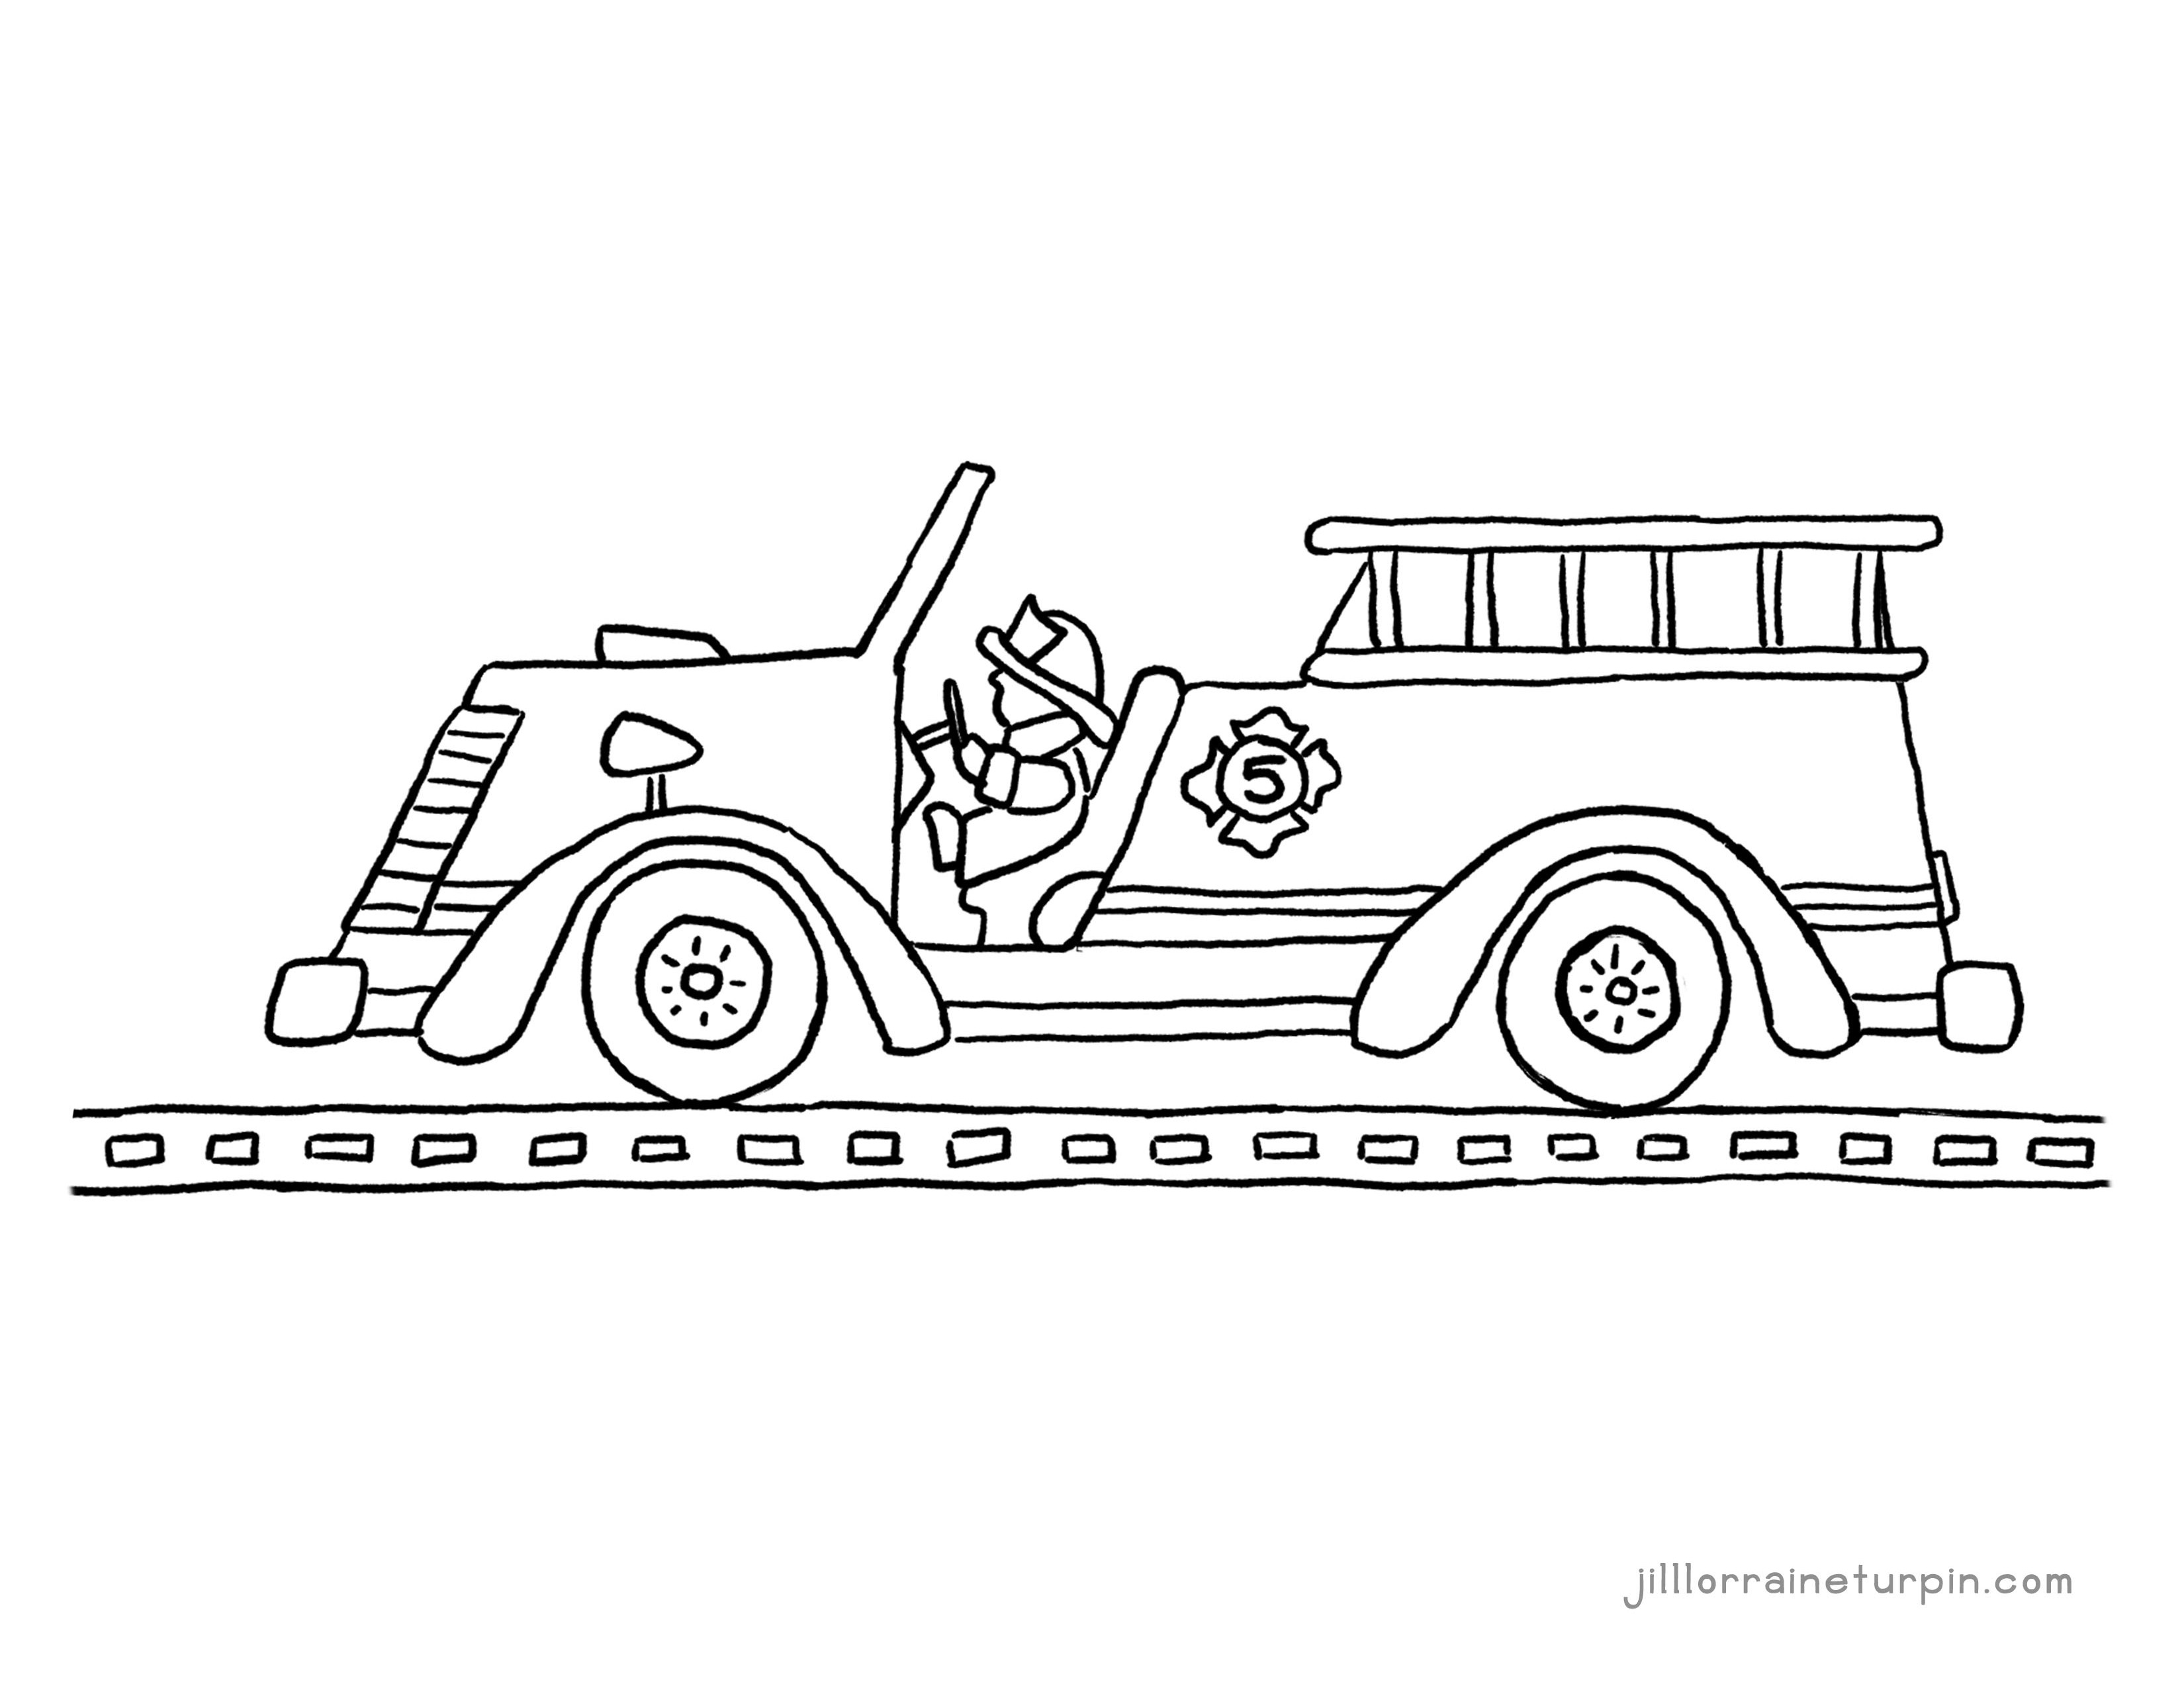 free fire truck coloring pages free printable fire truck coloring pages for kids pages coloring fire truck free